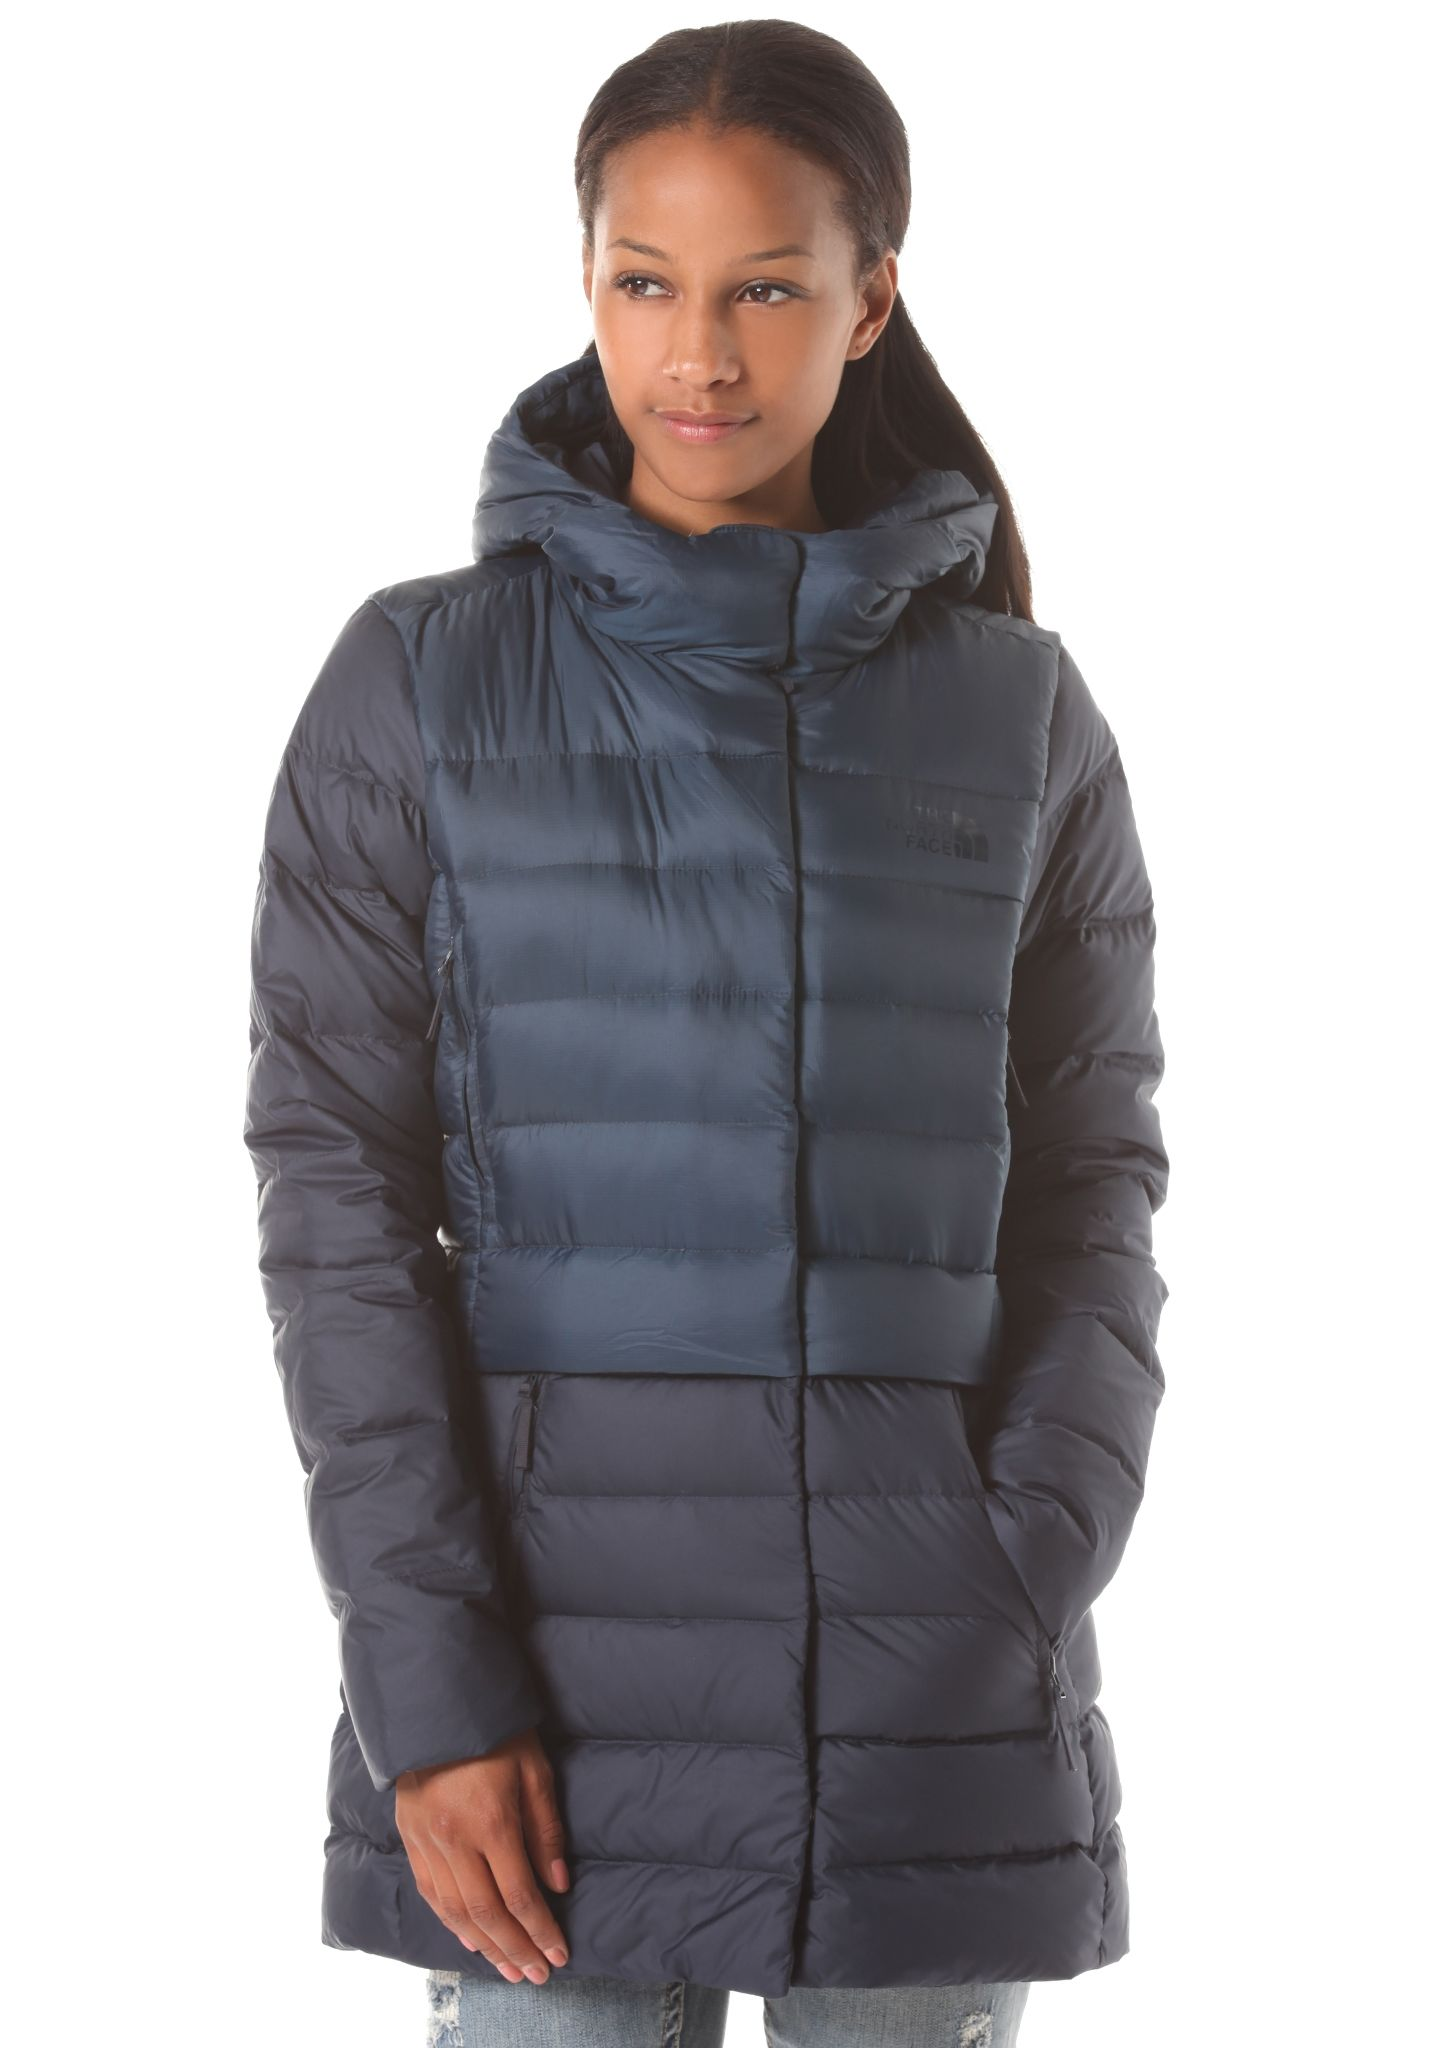 Leopard North Face Jacket